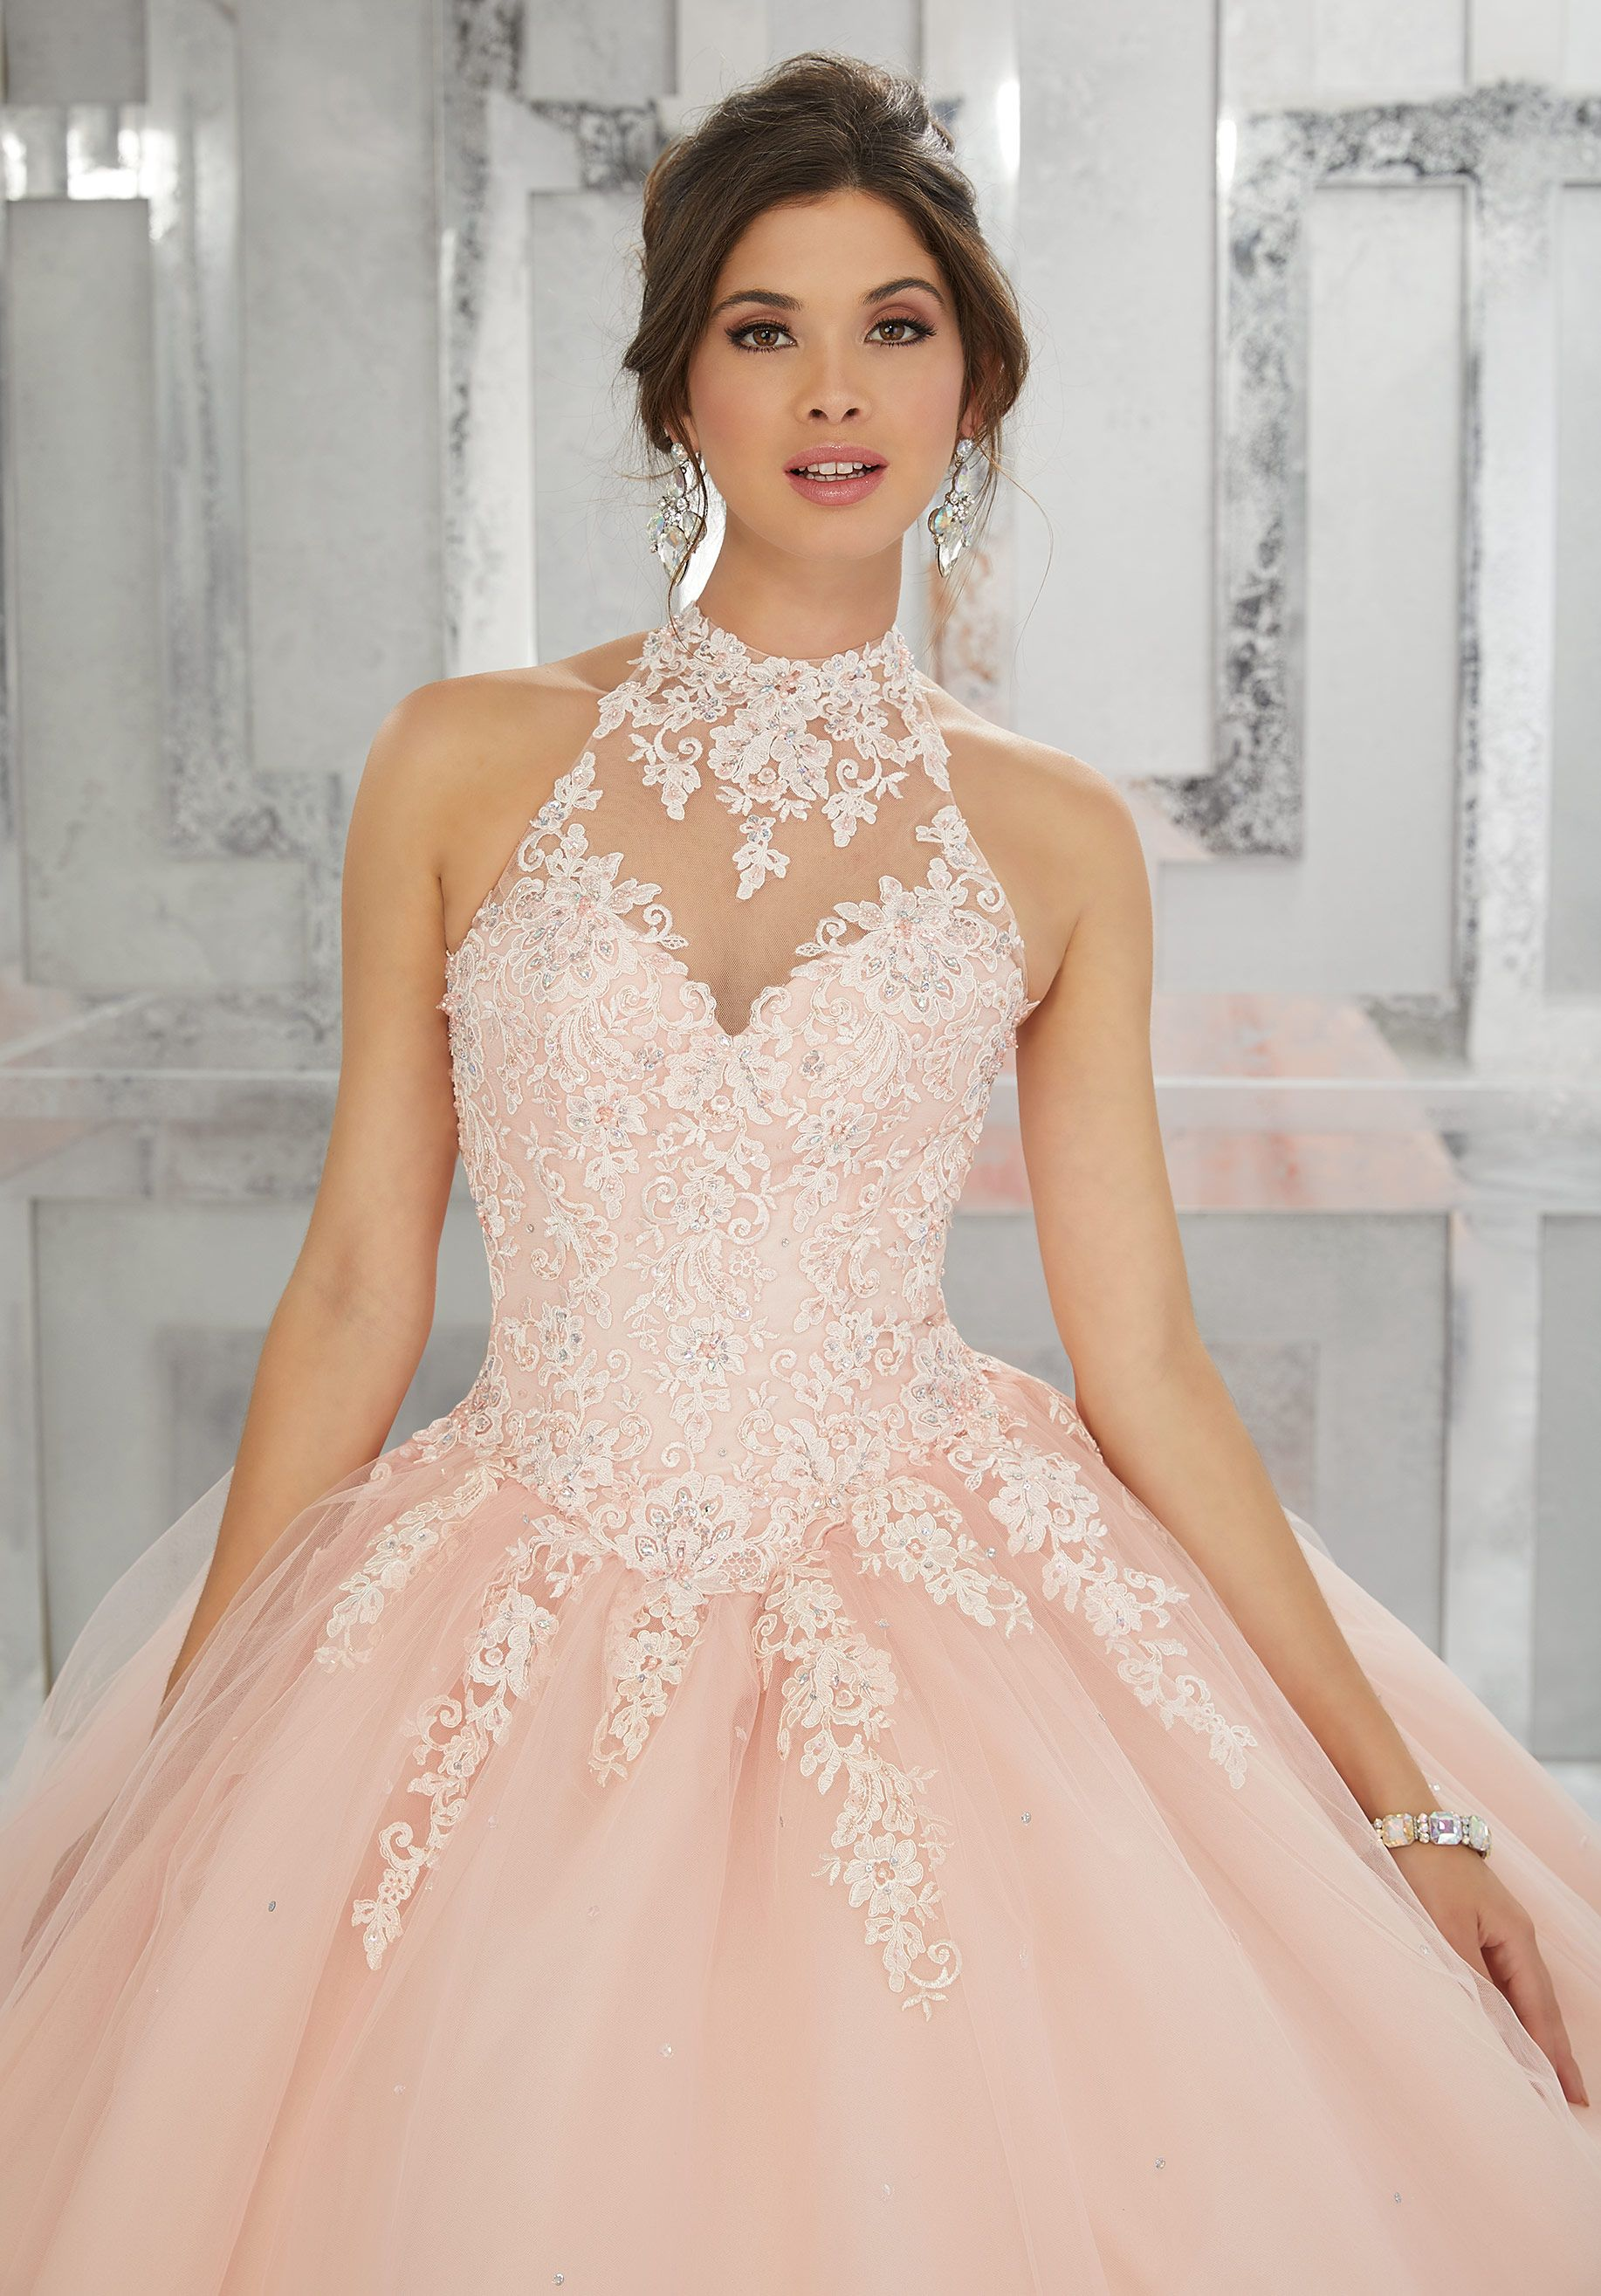 Classic and feminine this quinceañera ballgown features a lace